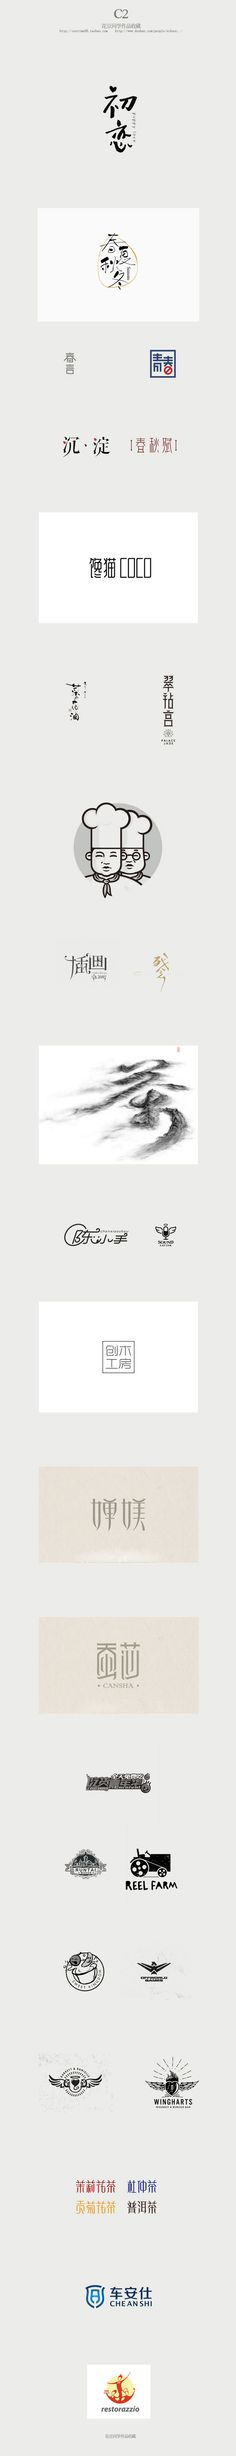 Chinese Typography Chinese Typ… - old. Typography Wallpaper, Typography Layout, Typographic Poster, Typographic Design, Font Design, Branding Design, Chinese Fonts Design, Fonts Chinese, Typography Magazine